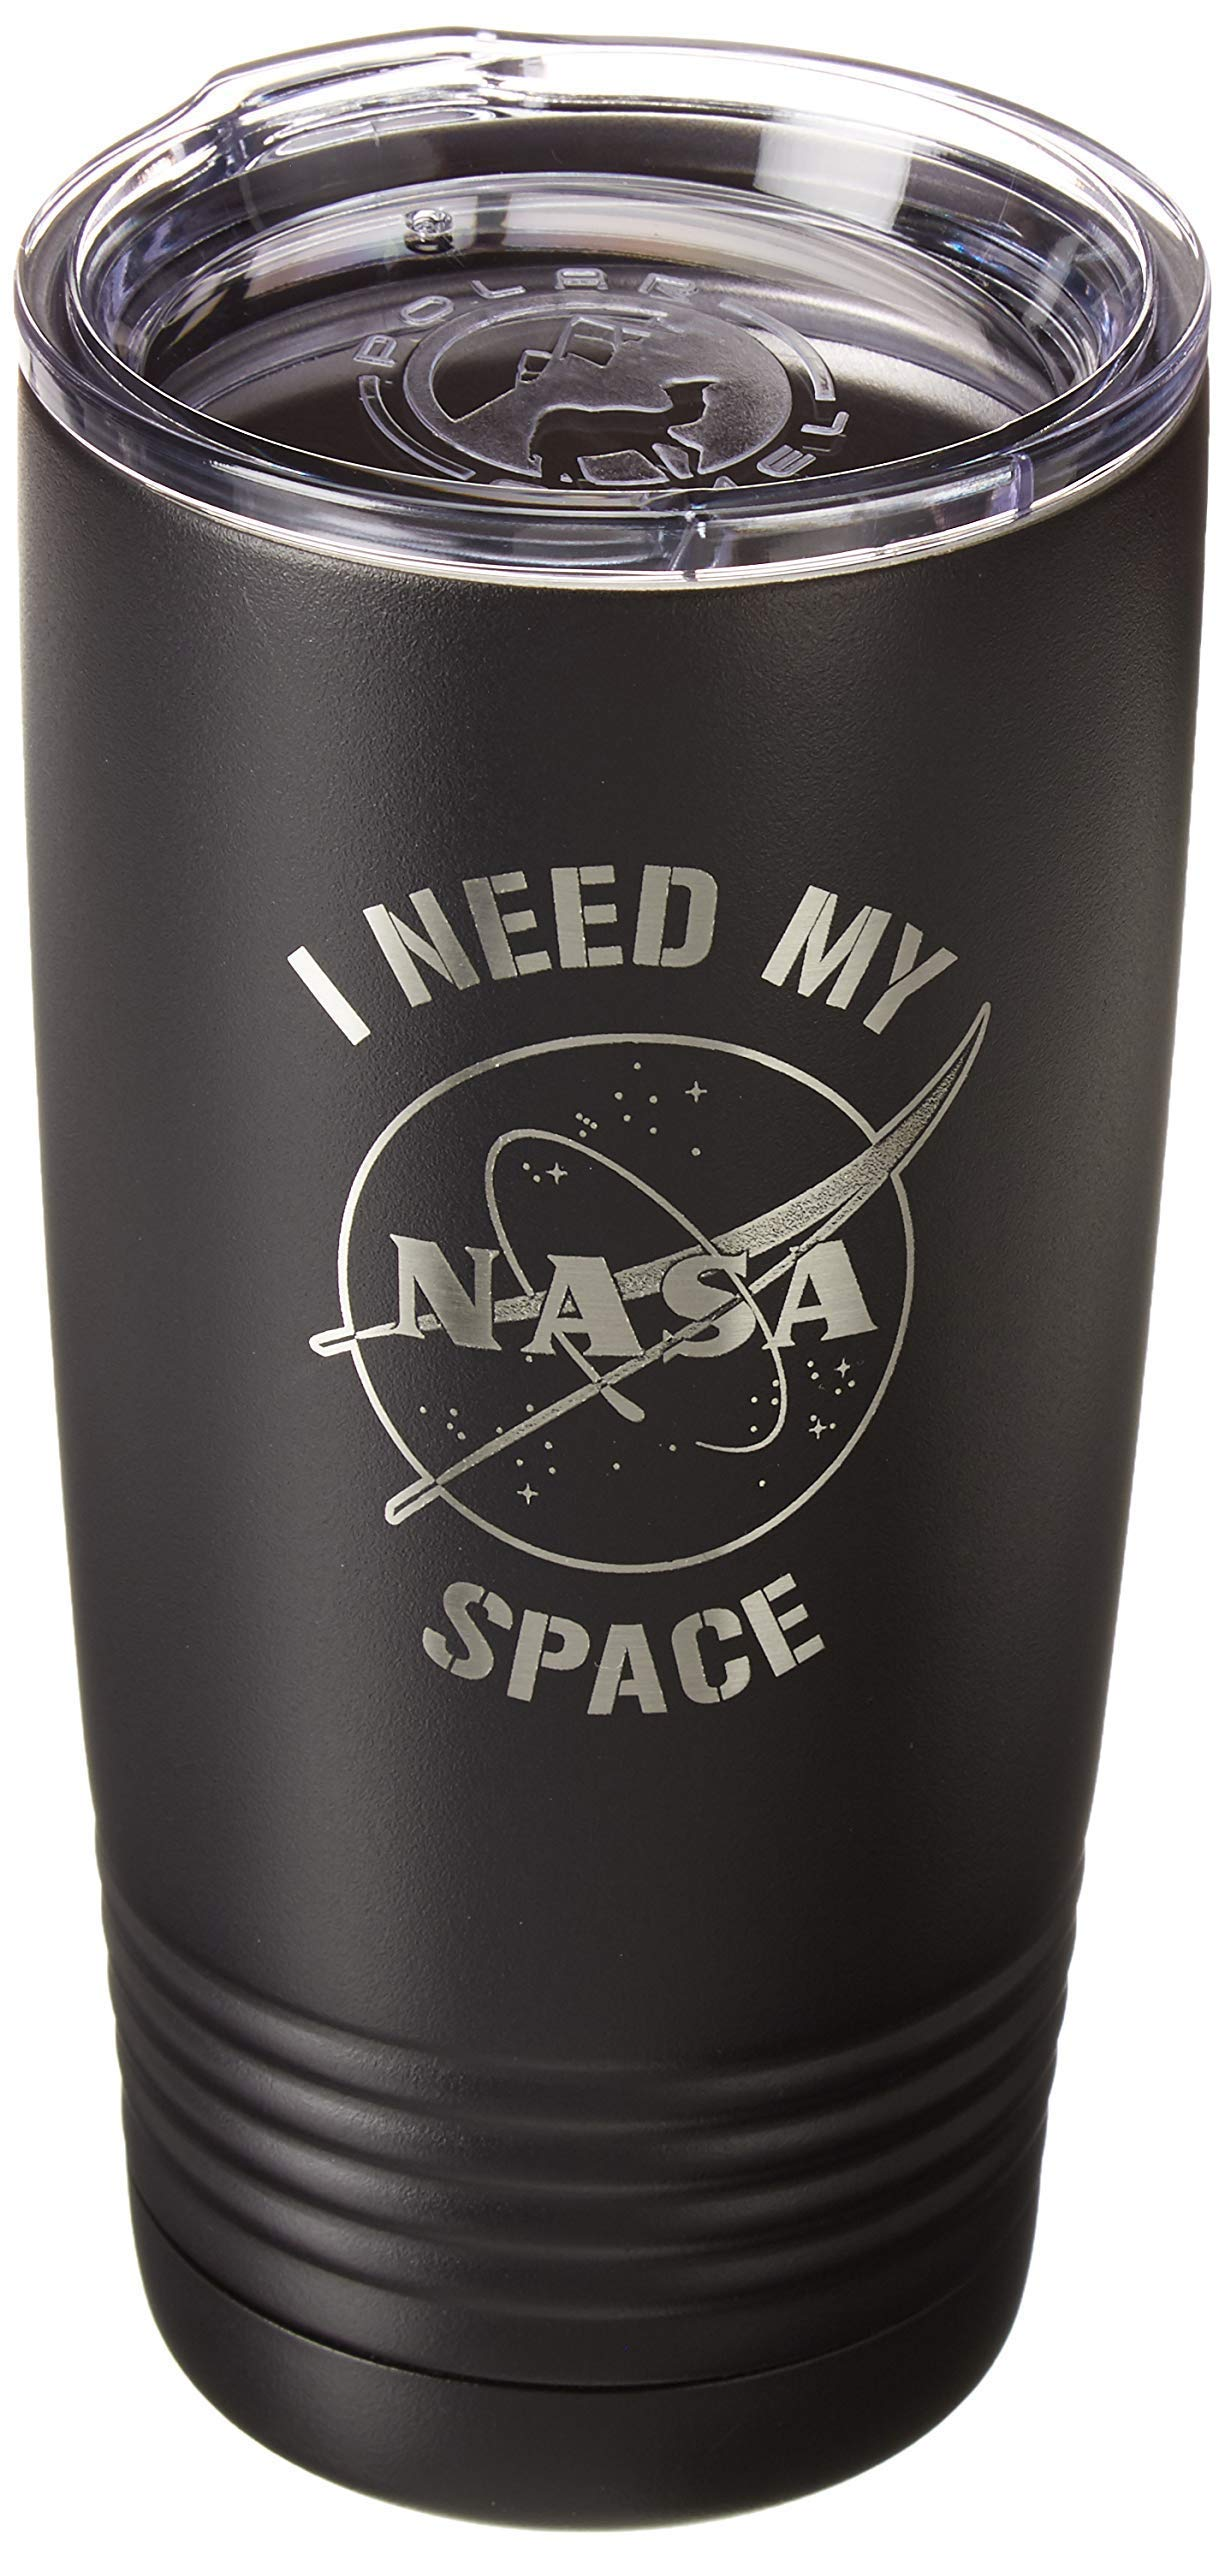 NASA I Need My Space Professionally Laser Engraved 20oz Stainless Steel/Metal Vacuum Insulated Coffee/Hot & Cold Beverage Tumbler/Cup/Mug With Plastic Lid